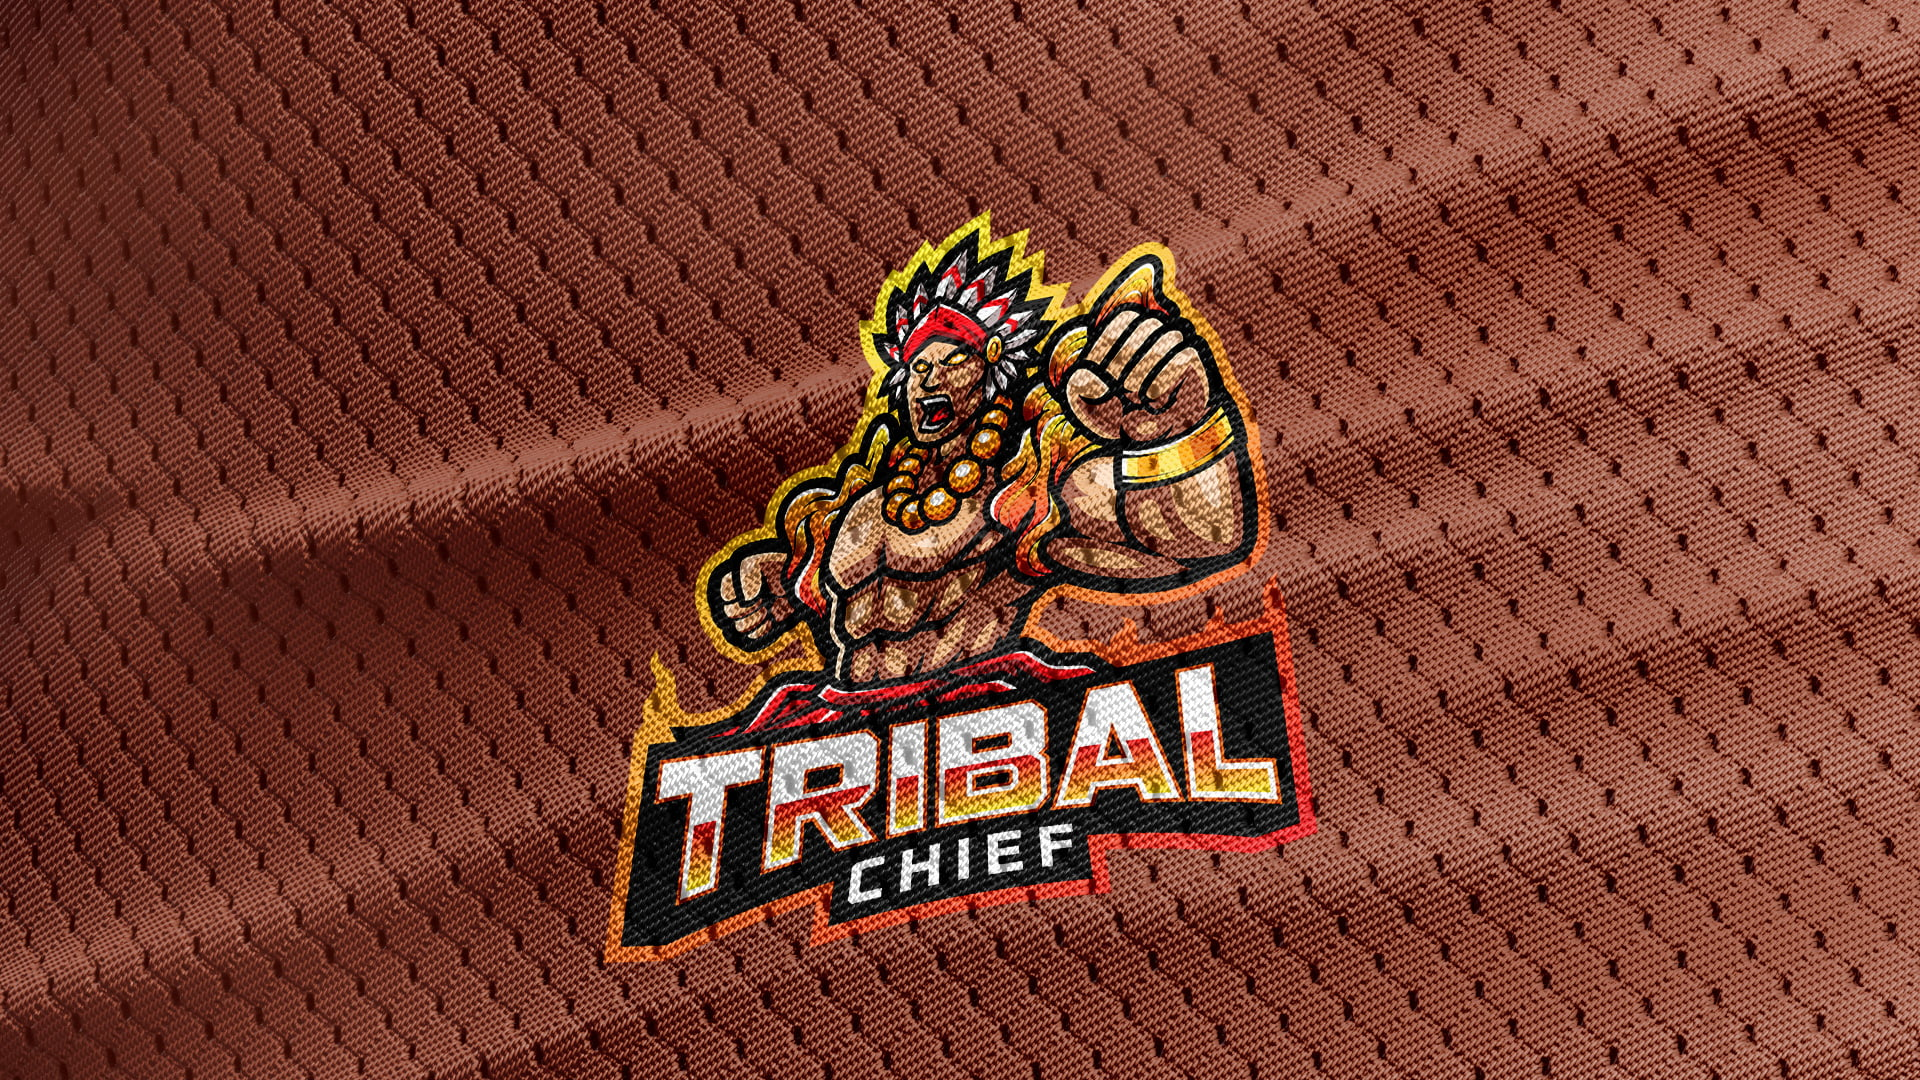 Jersey-Texture-Free-Download-Tribal-Chief-Logo-Mascot